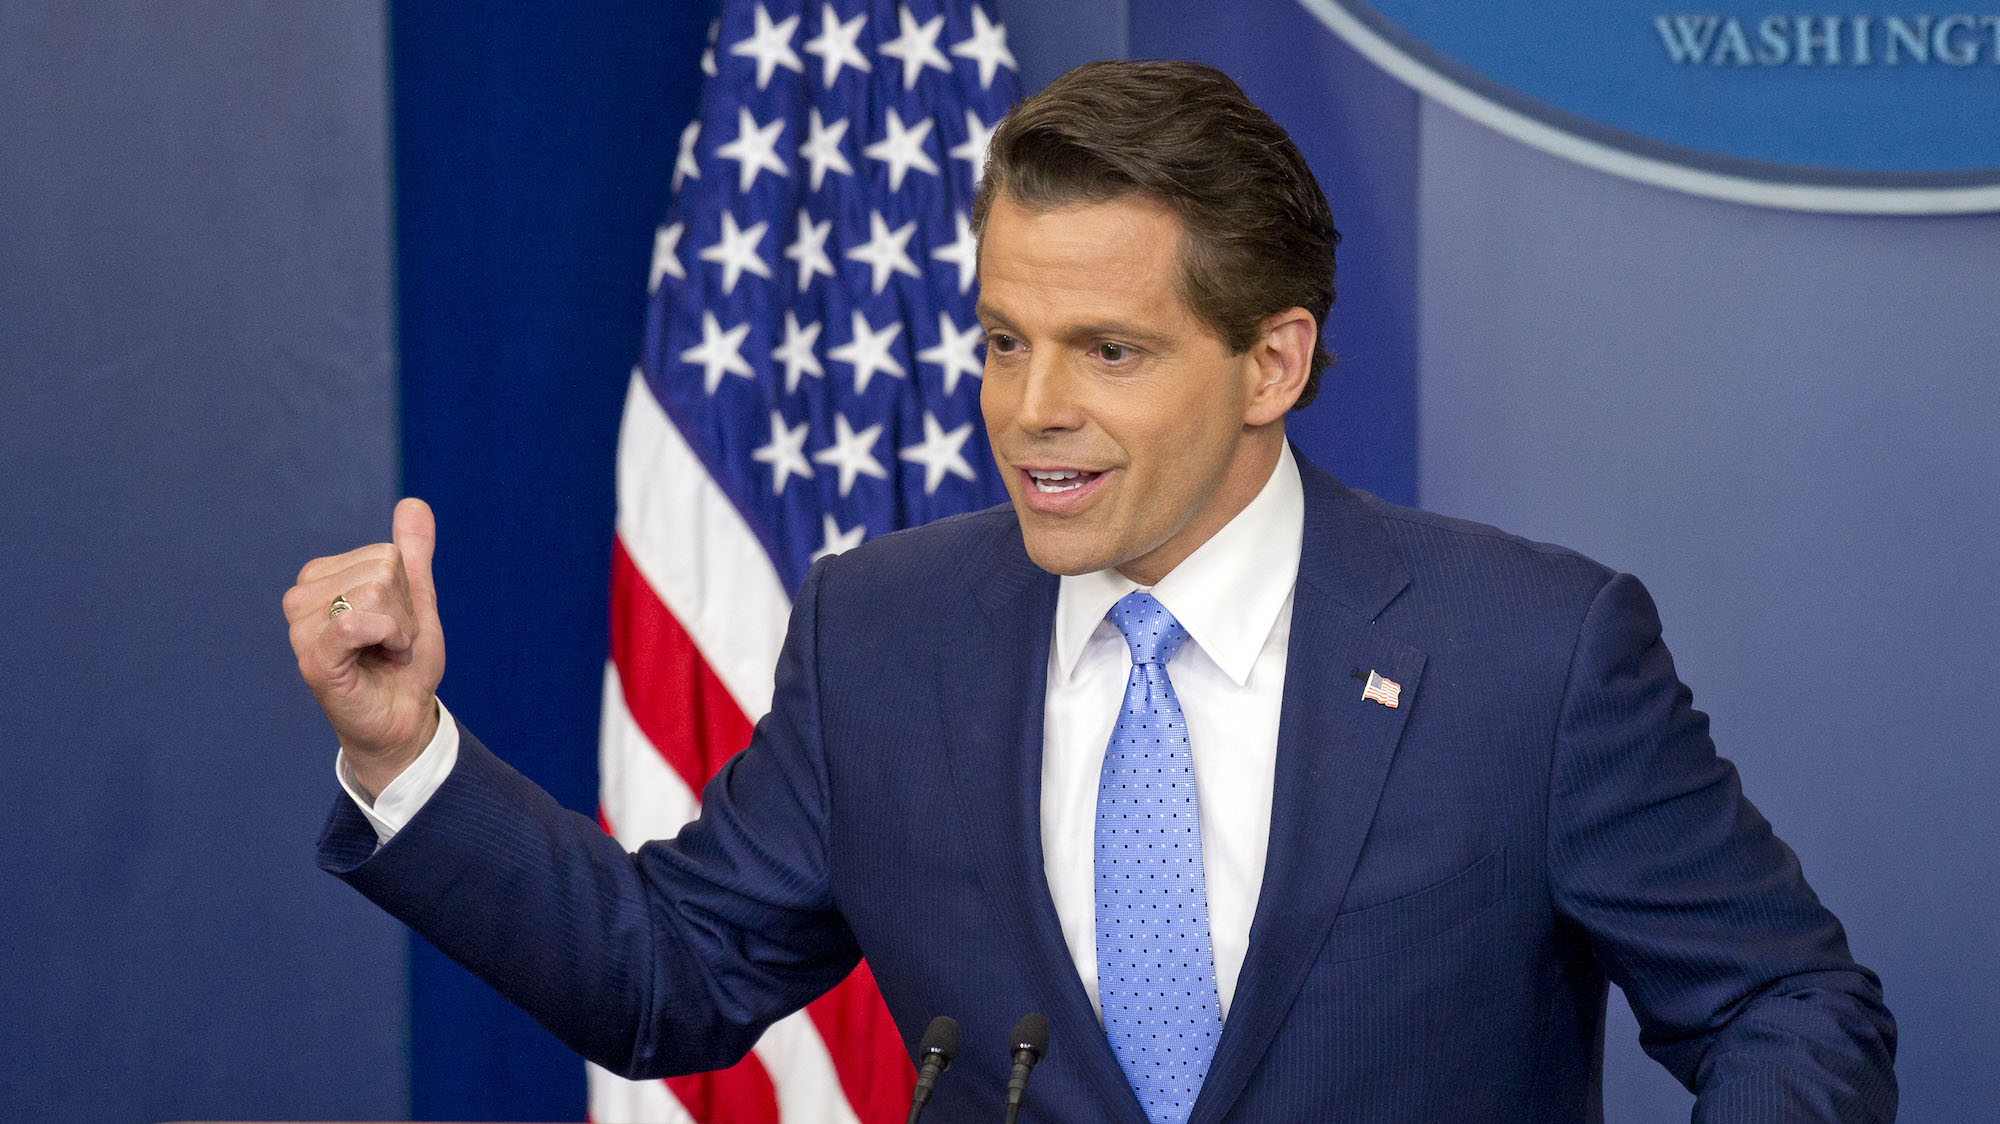 Trump expected to make Scaramucci communications director